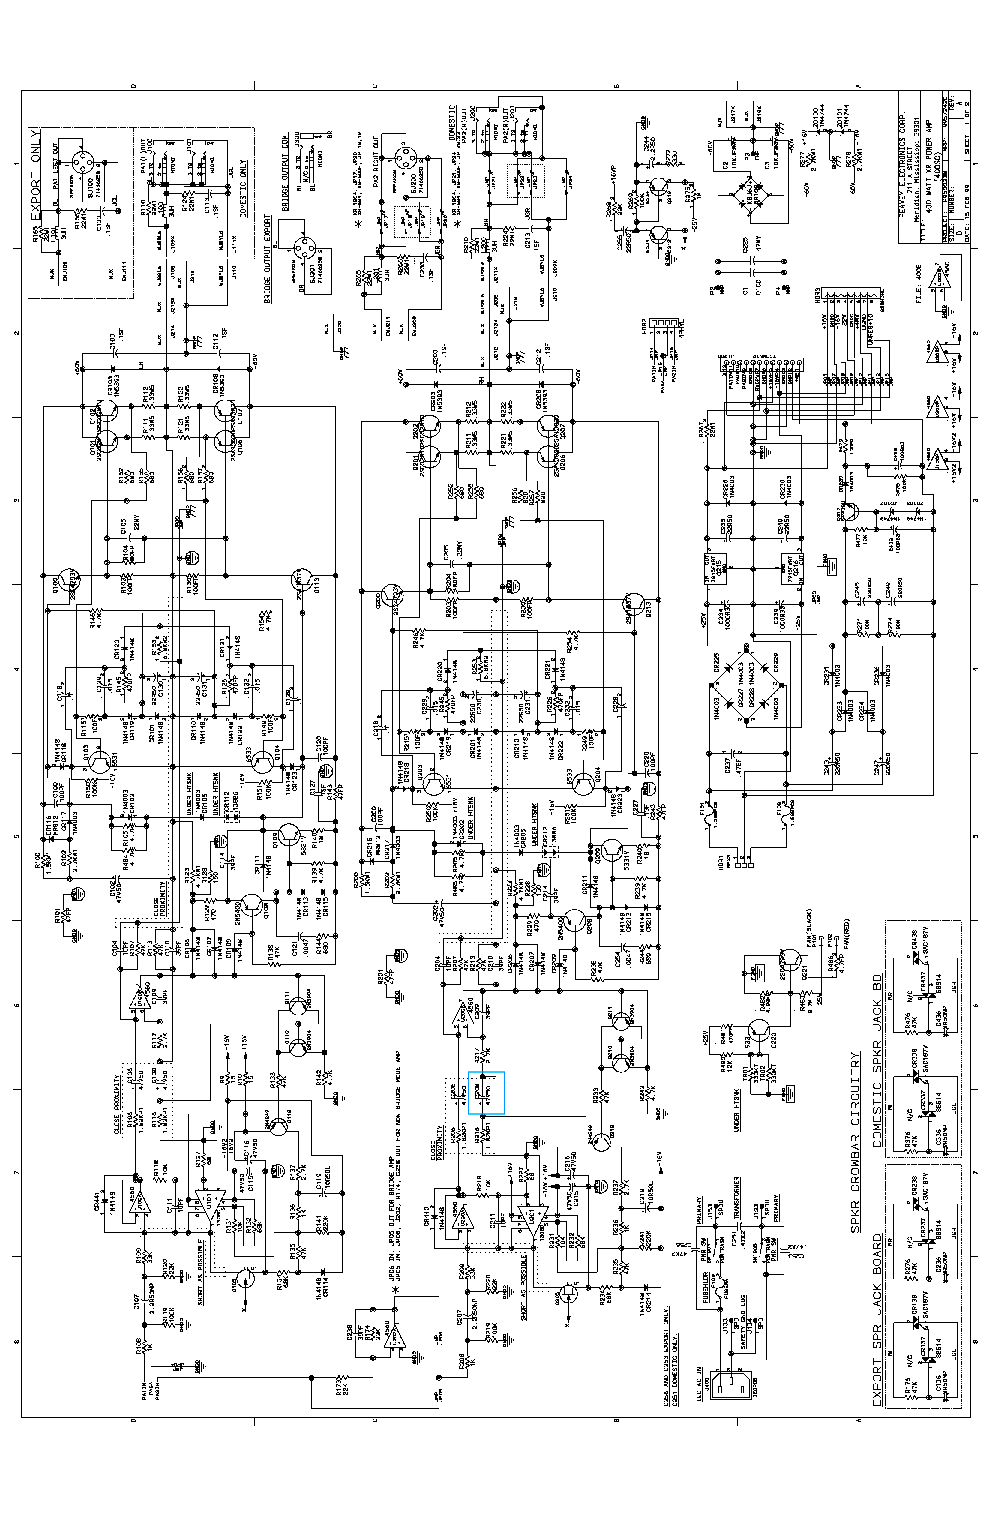 fantastic peavey rockmaster schematic sketch electrical diagram rh itseo info Peavey Wolfgang Wiring-Diagram Treadmill Circuit Board Wiring Diagram